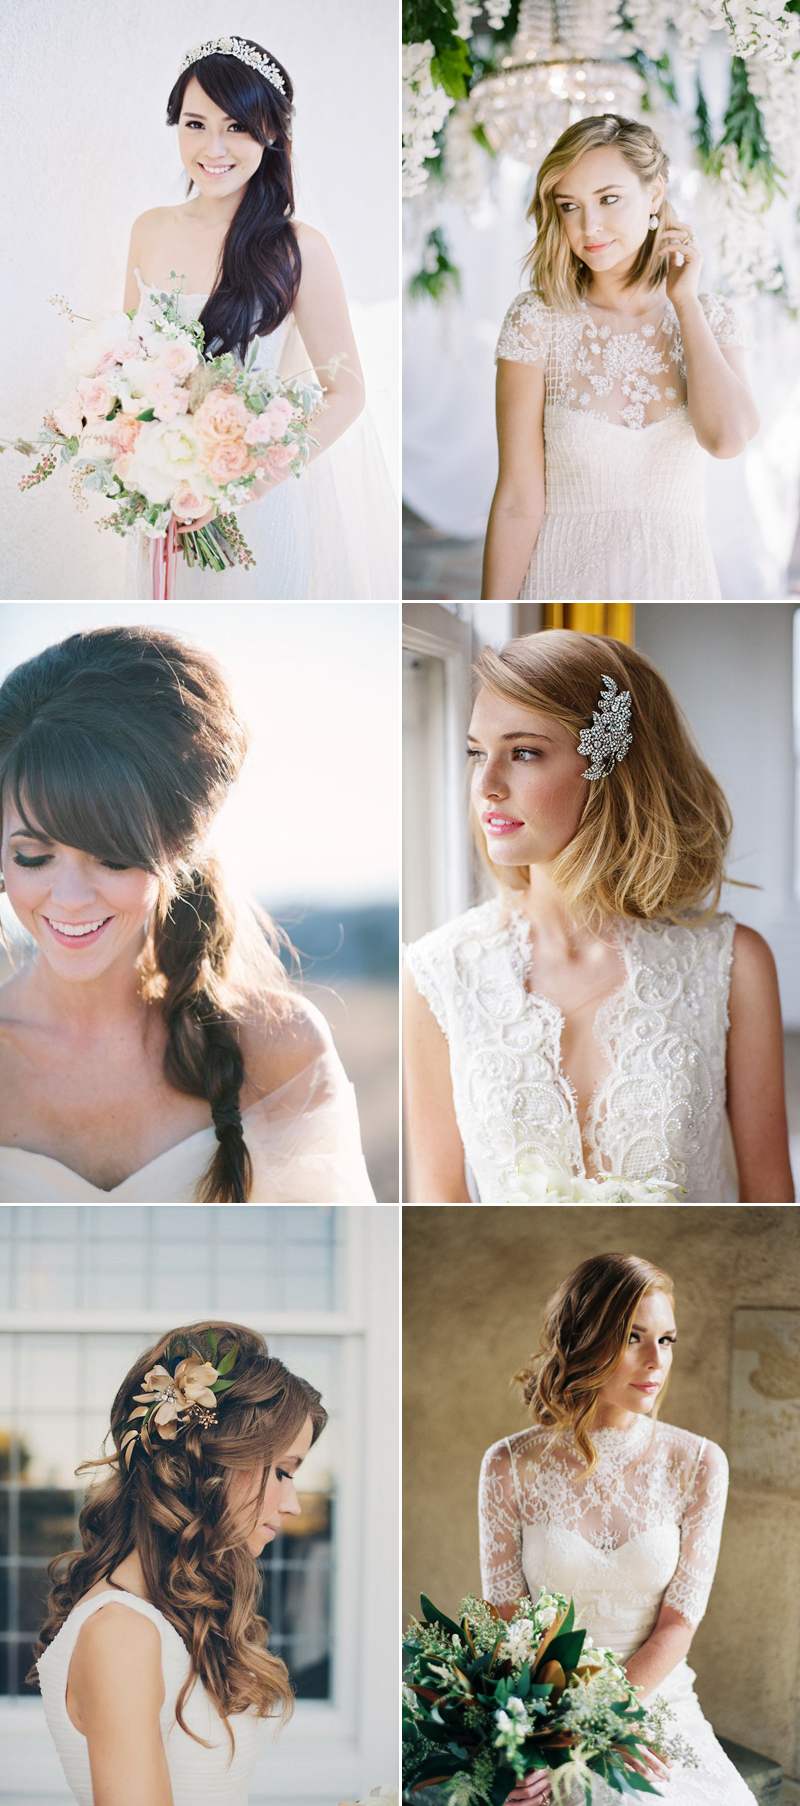 How to Find the Right Wedding-Day Hairstyle? The Most Flattering ...